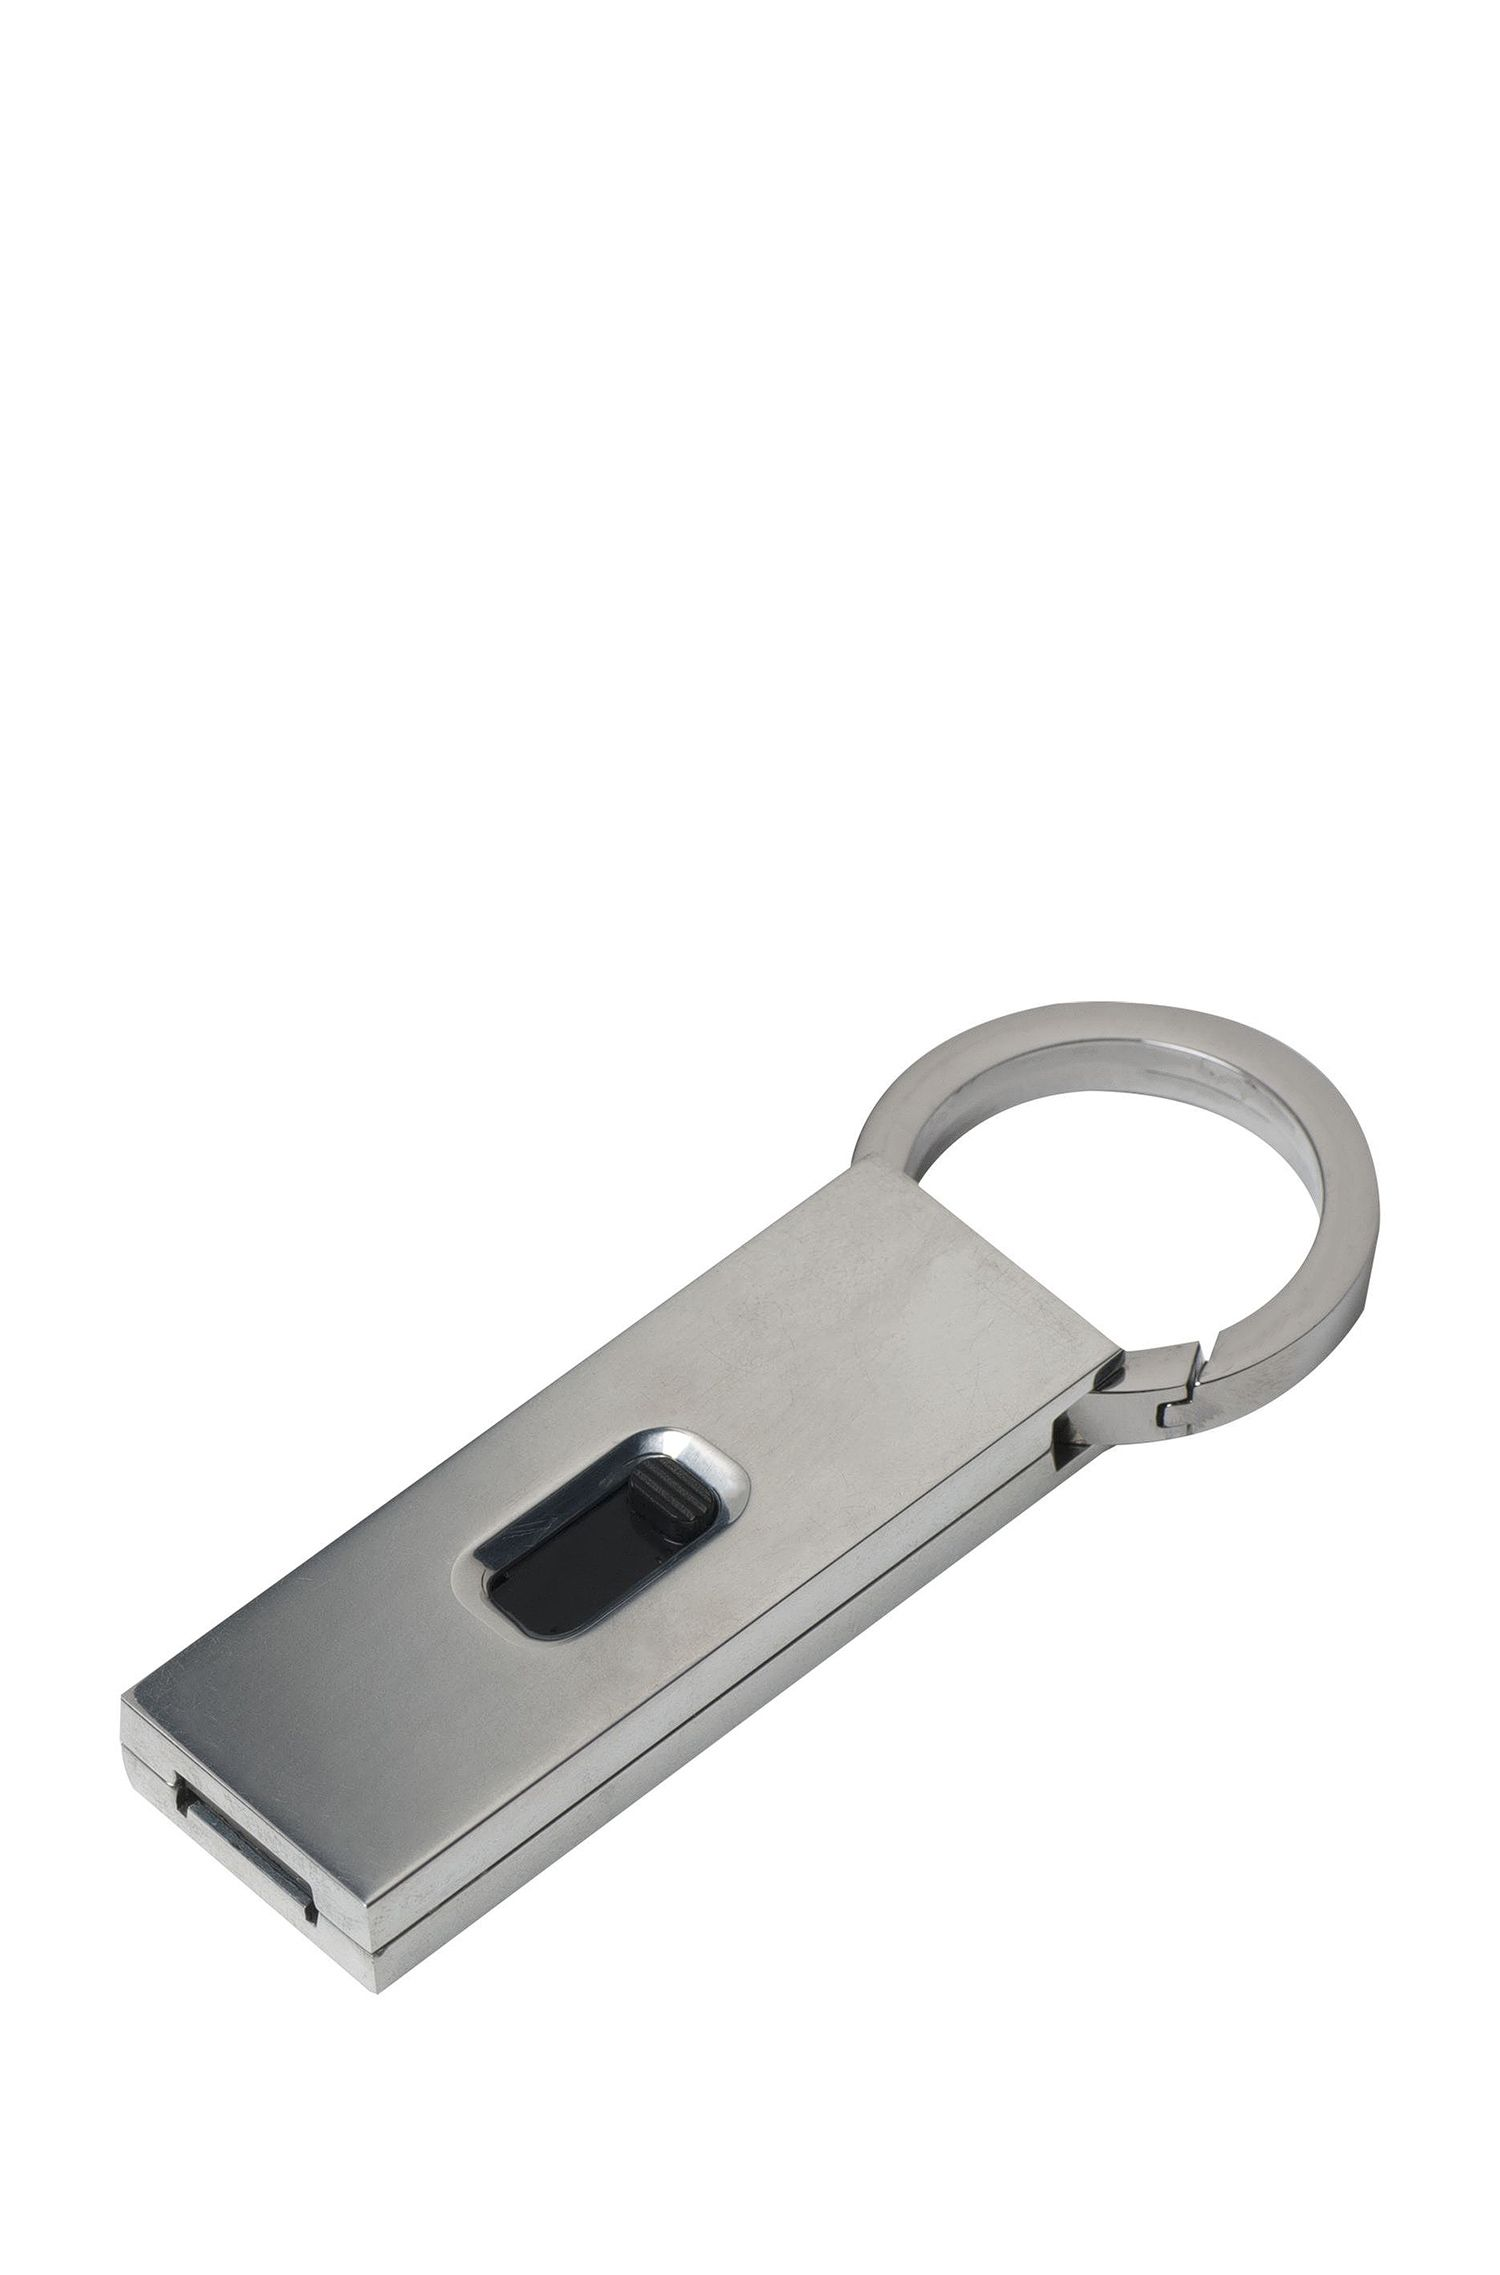 16GB USB stick in faux leather